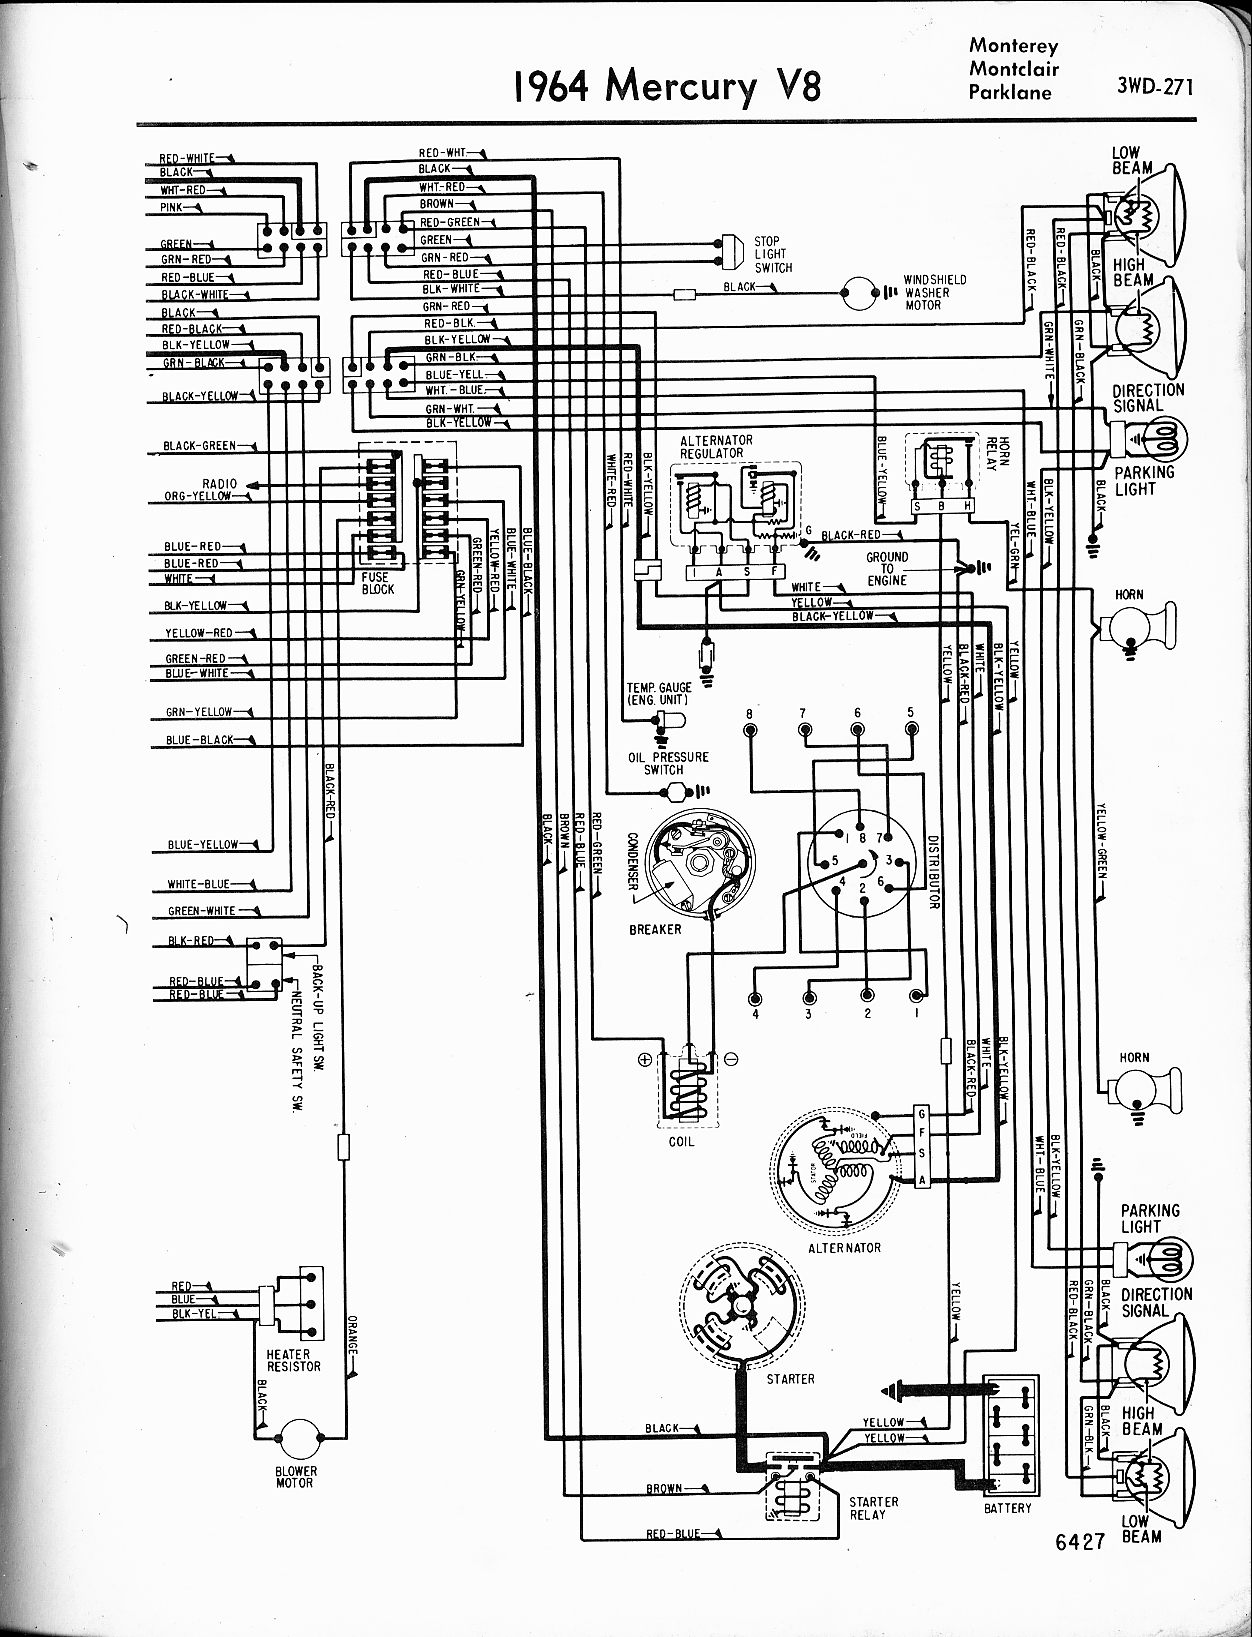 MWire5765 271 mercury wiring diagrams the old car manual project 1964 ford wiring diagram at nearapp.co